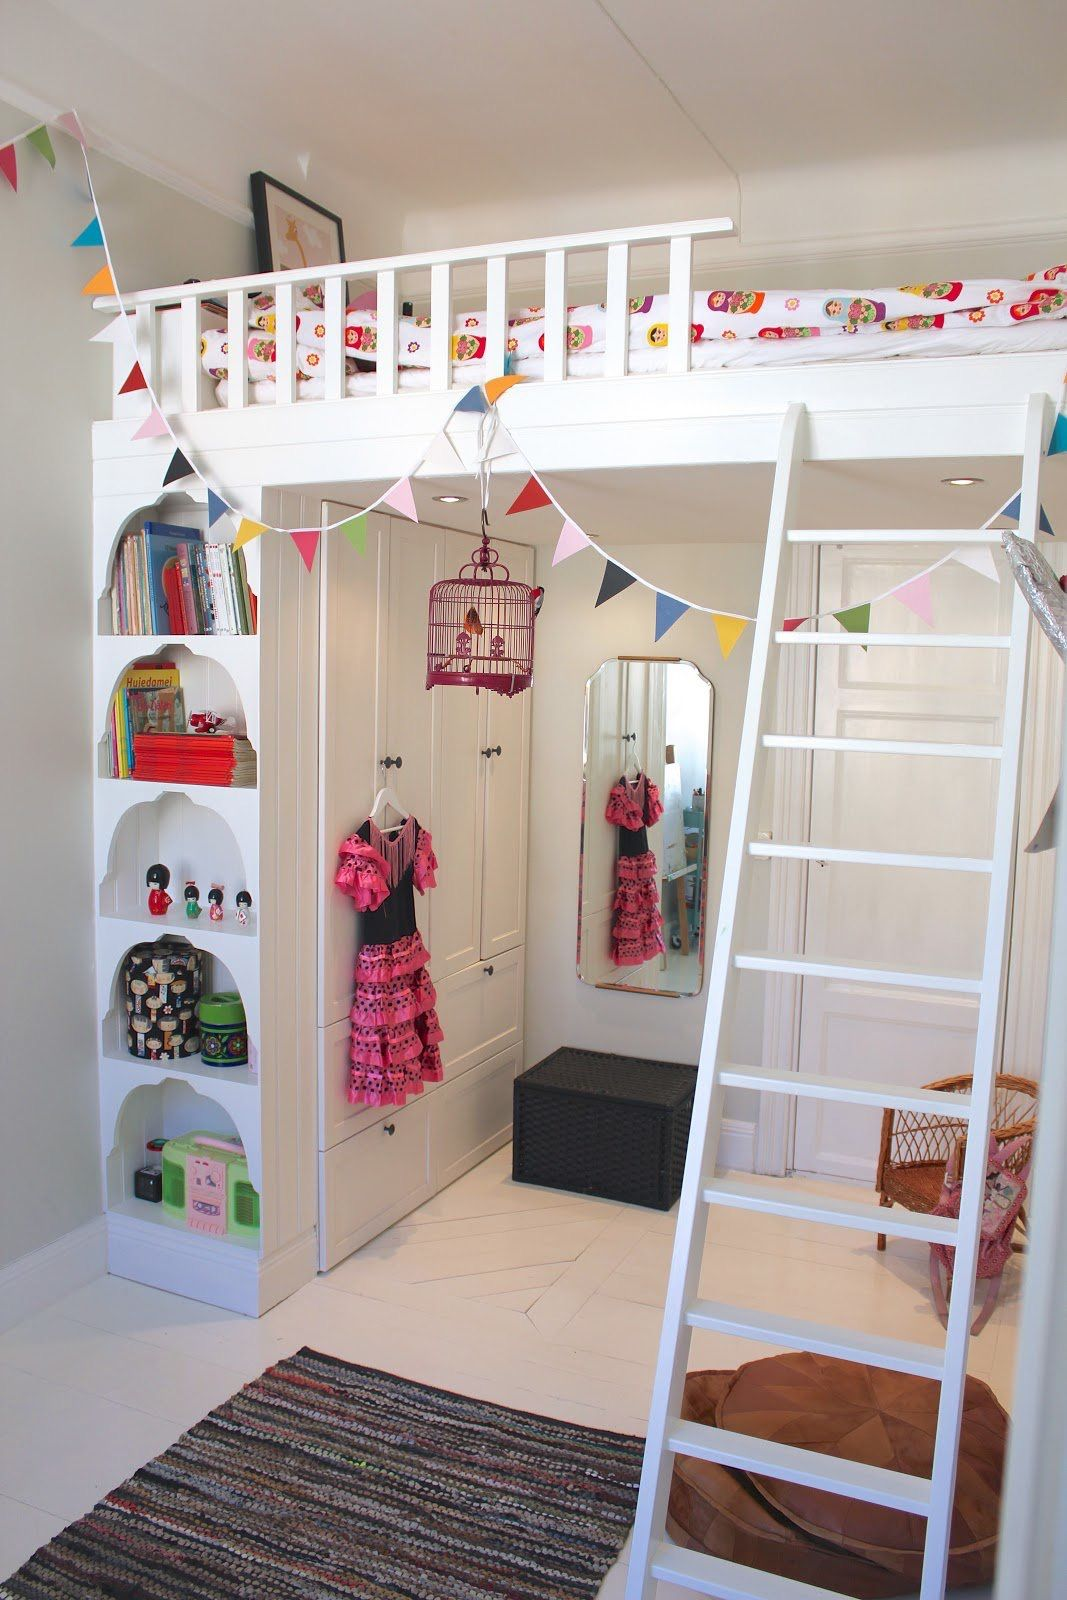 Small loft bed ideas  Raise the Roof Kidsu Loft Bed Inspiration  Kinderkamer  Pinterest